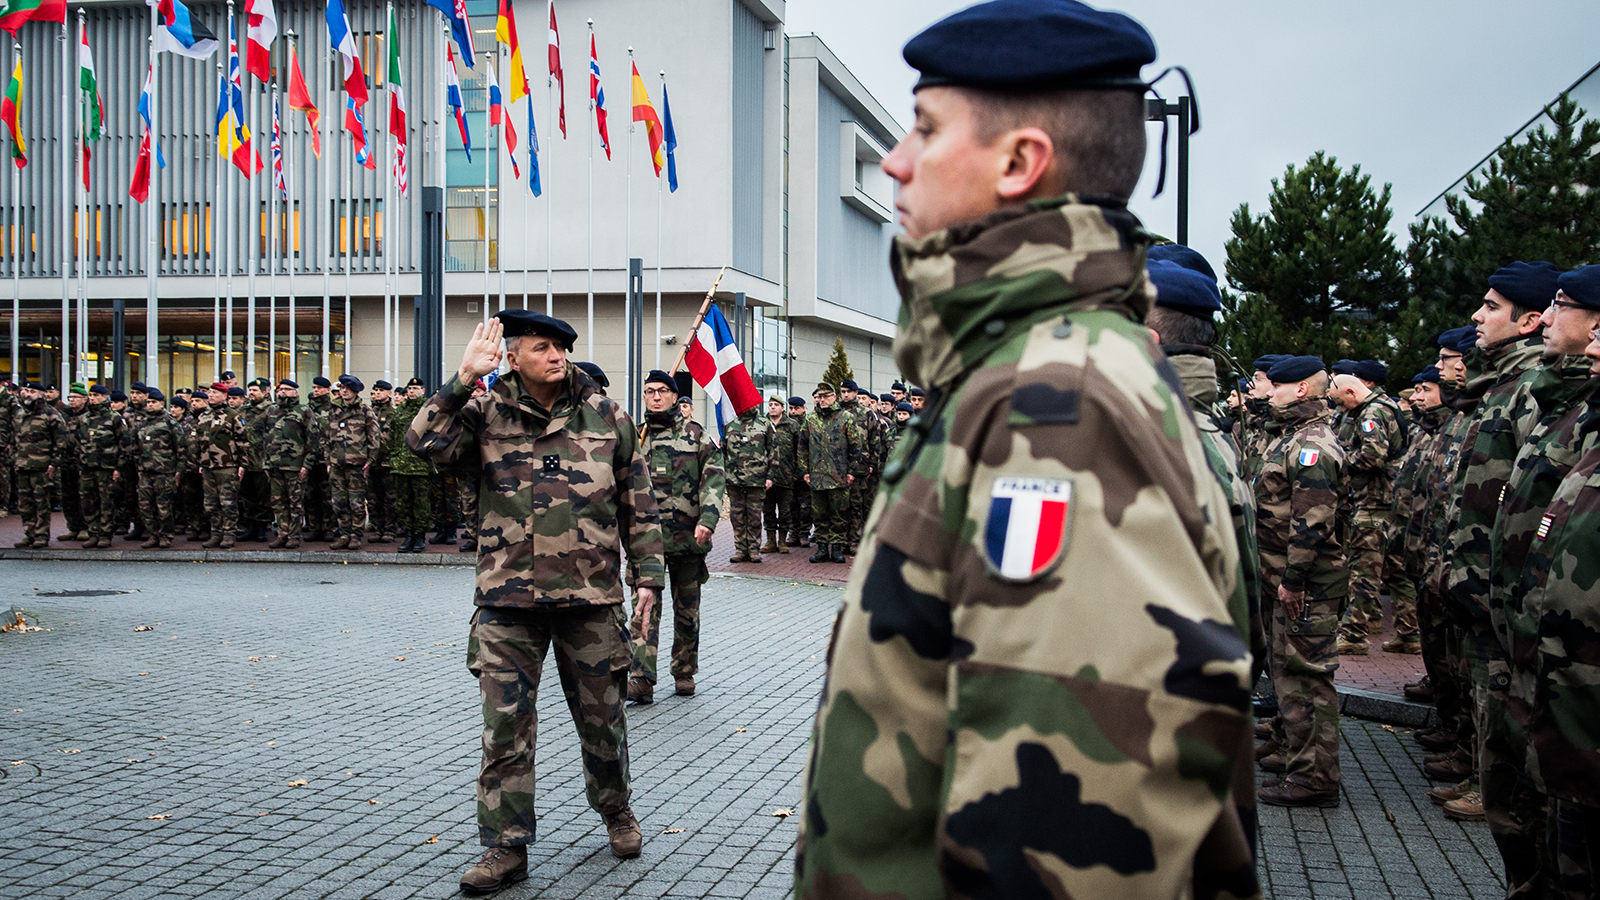 Rapid Reaction Corps-France Back in Bydgoszcz to Maintain Readiness